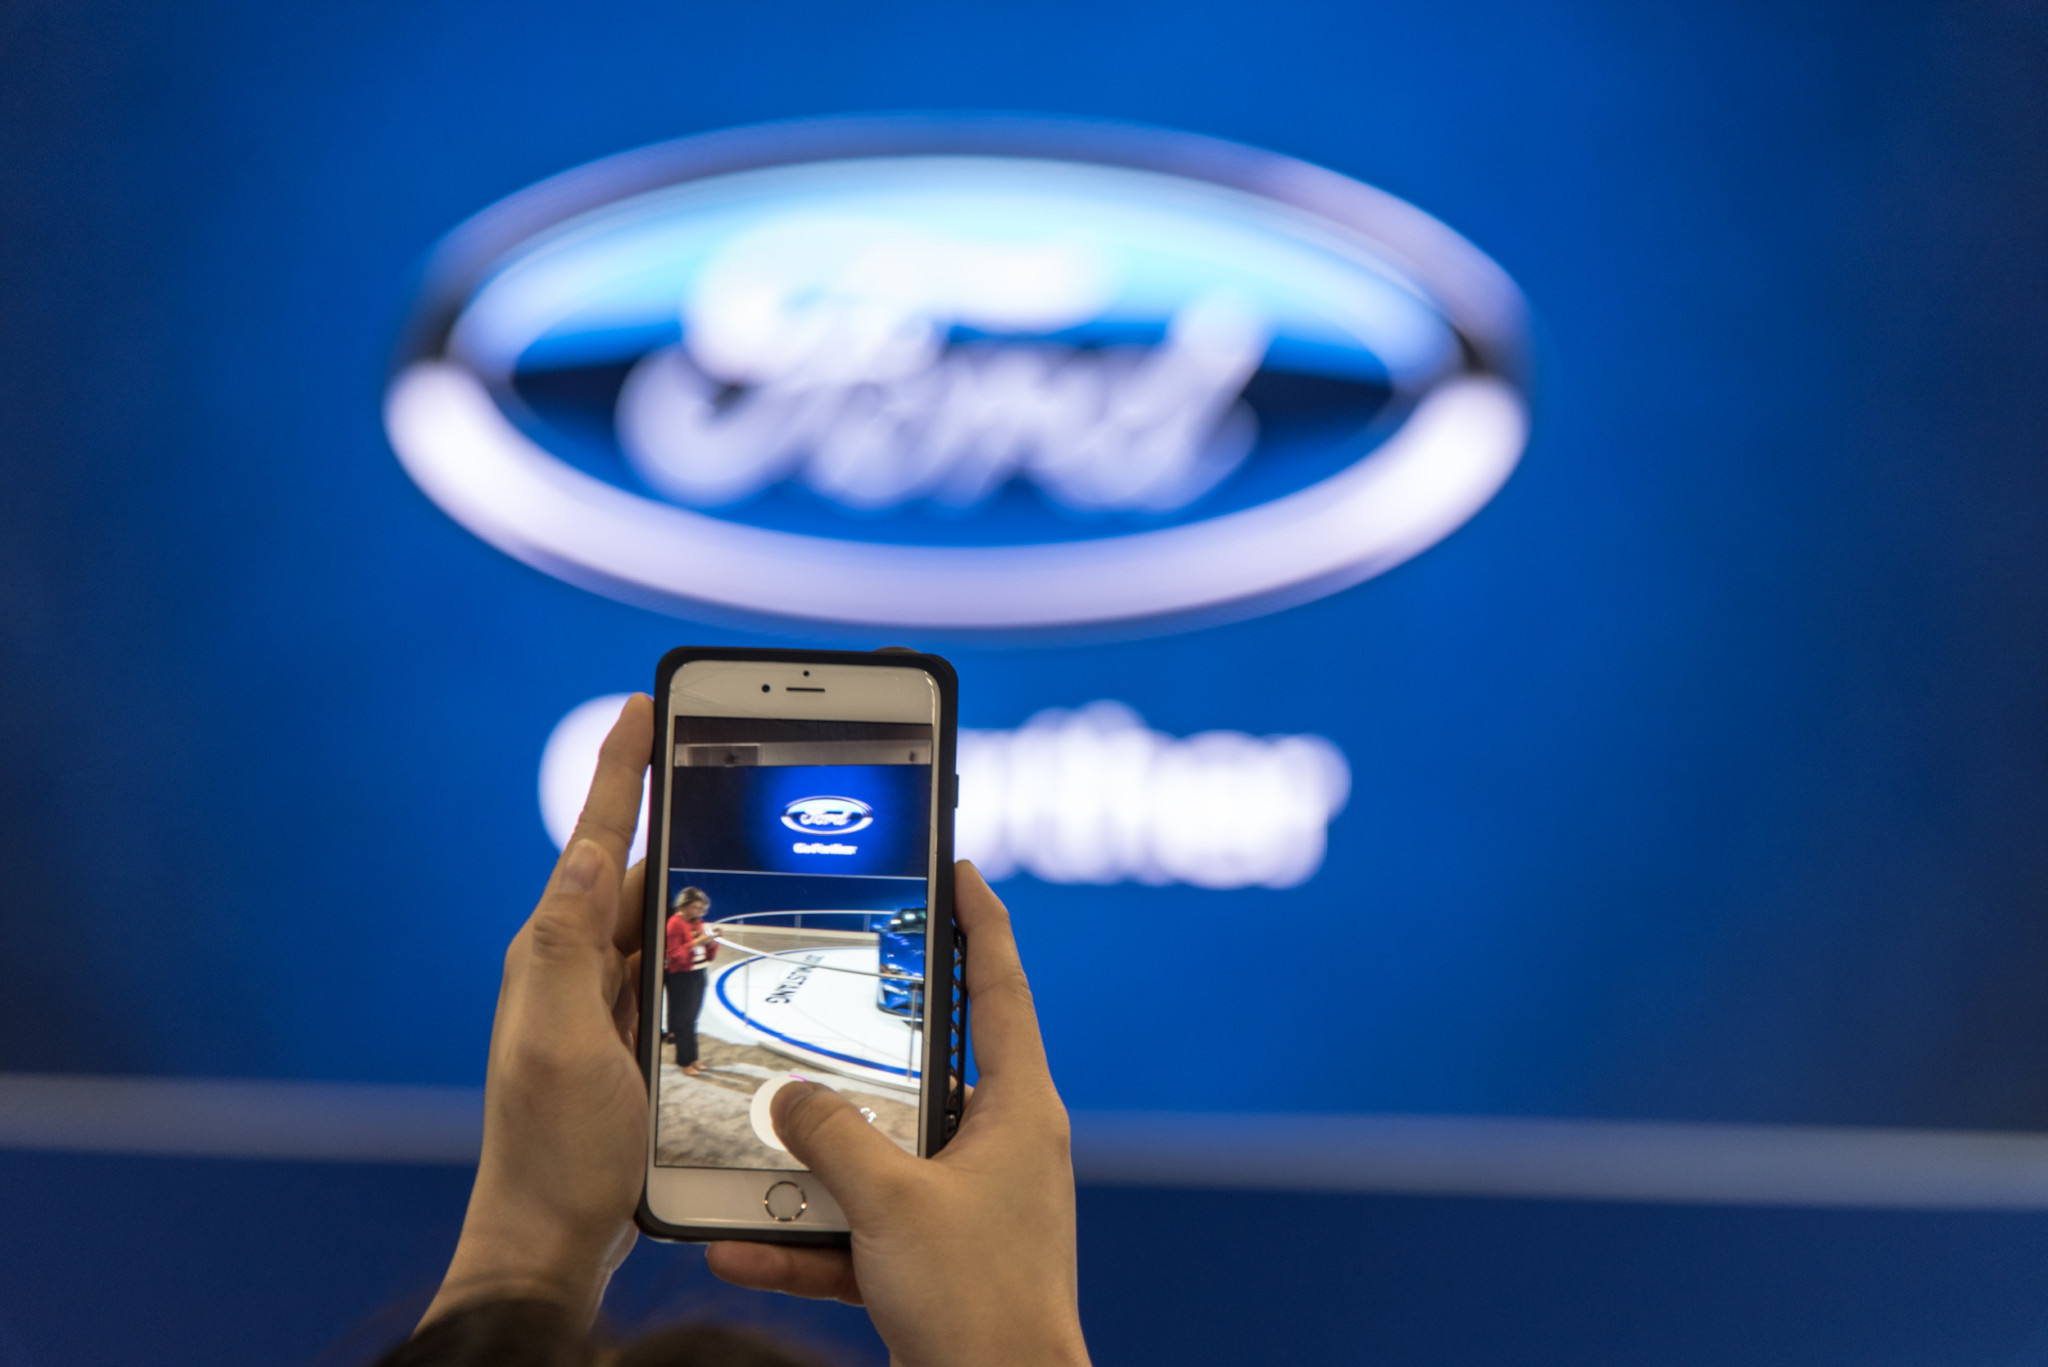 Discover the newest line-up from Ford at the Vancouver International Auto Show